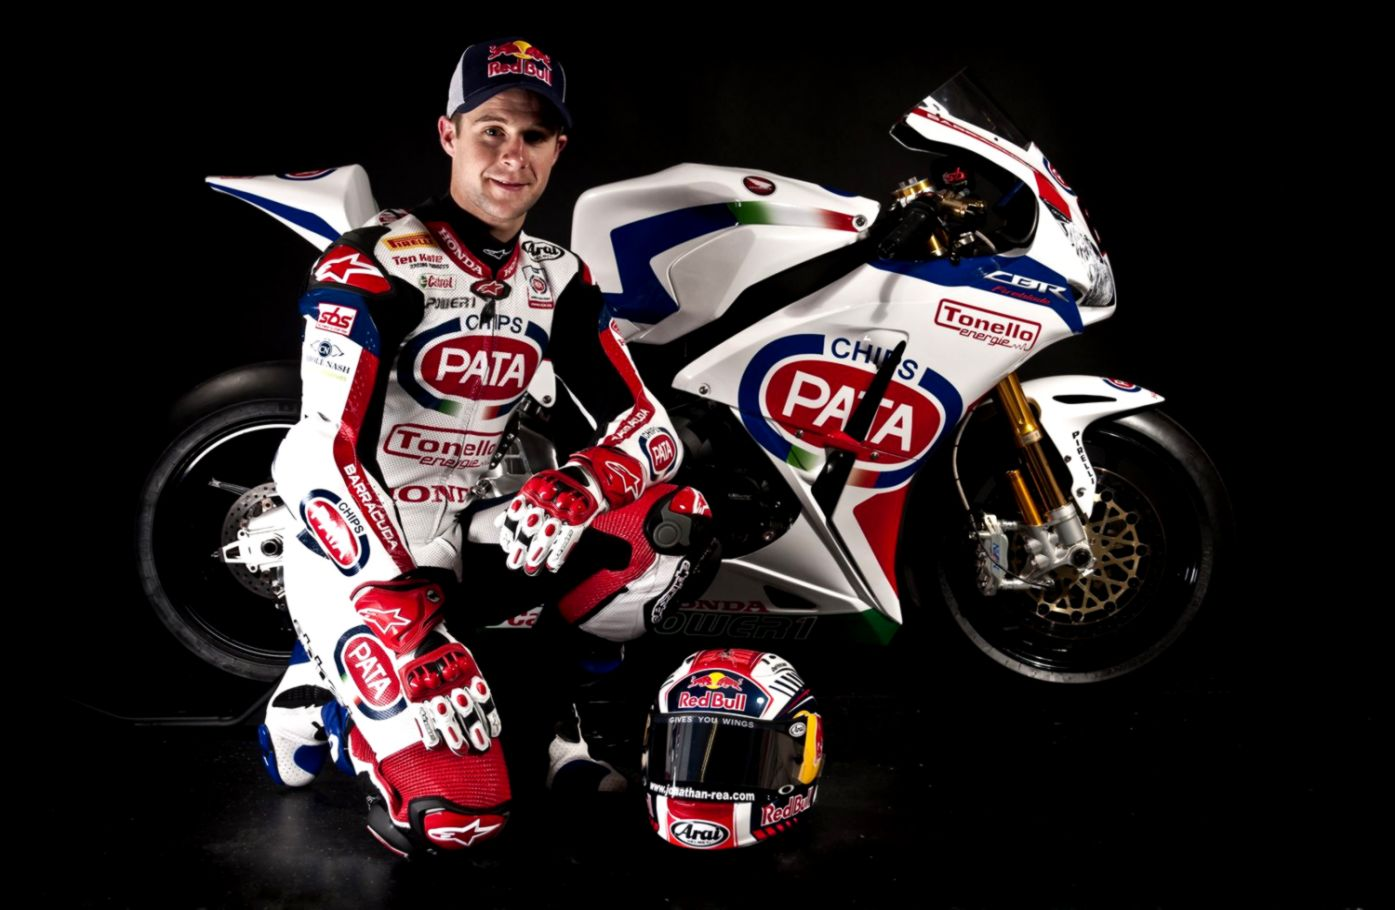 Superbike Jonathan Honda Cbr Hd  Free High Definition Wallpapers